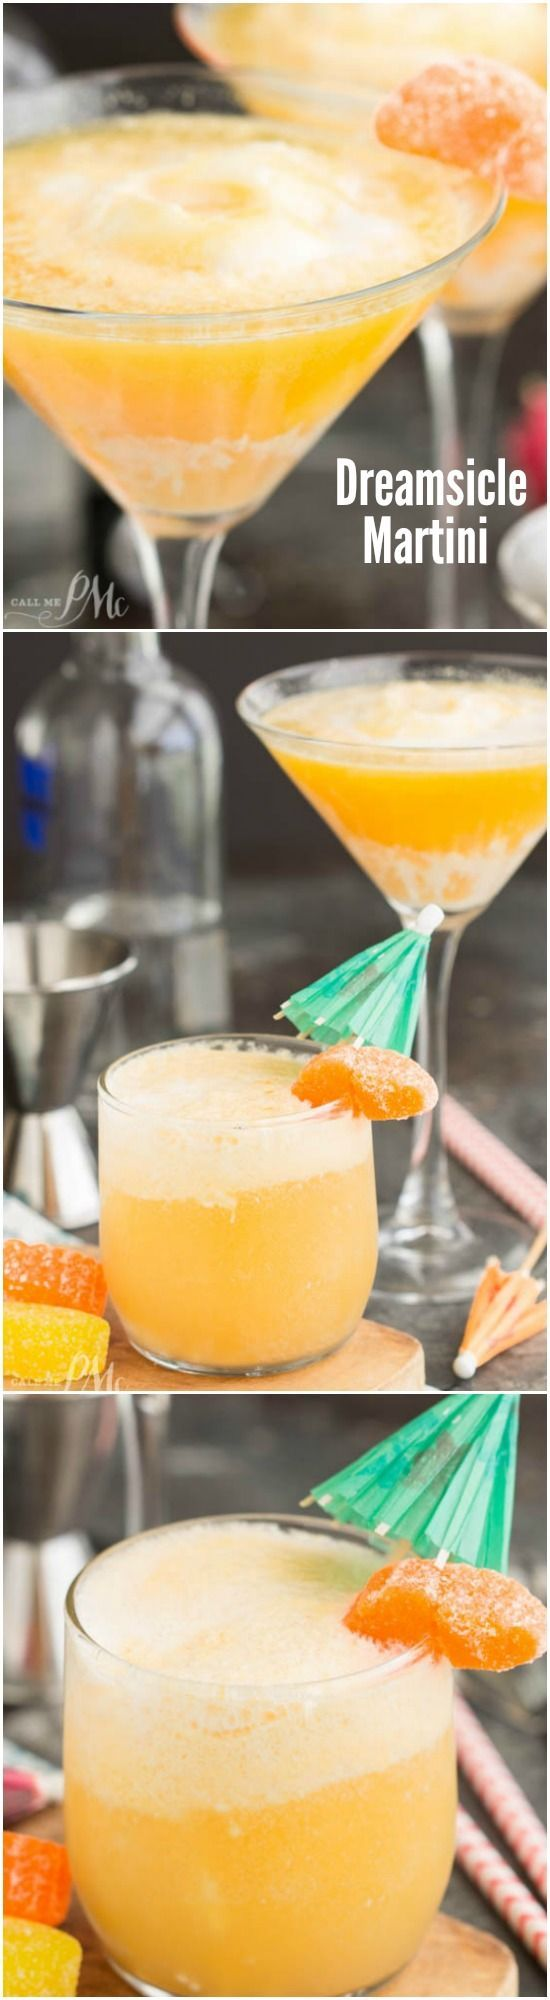 Dreamsicle Martini Recipe is a vodka cocktail made with ice cream and orange juice. It's fun summer time drink and can be made with or without the vodka!